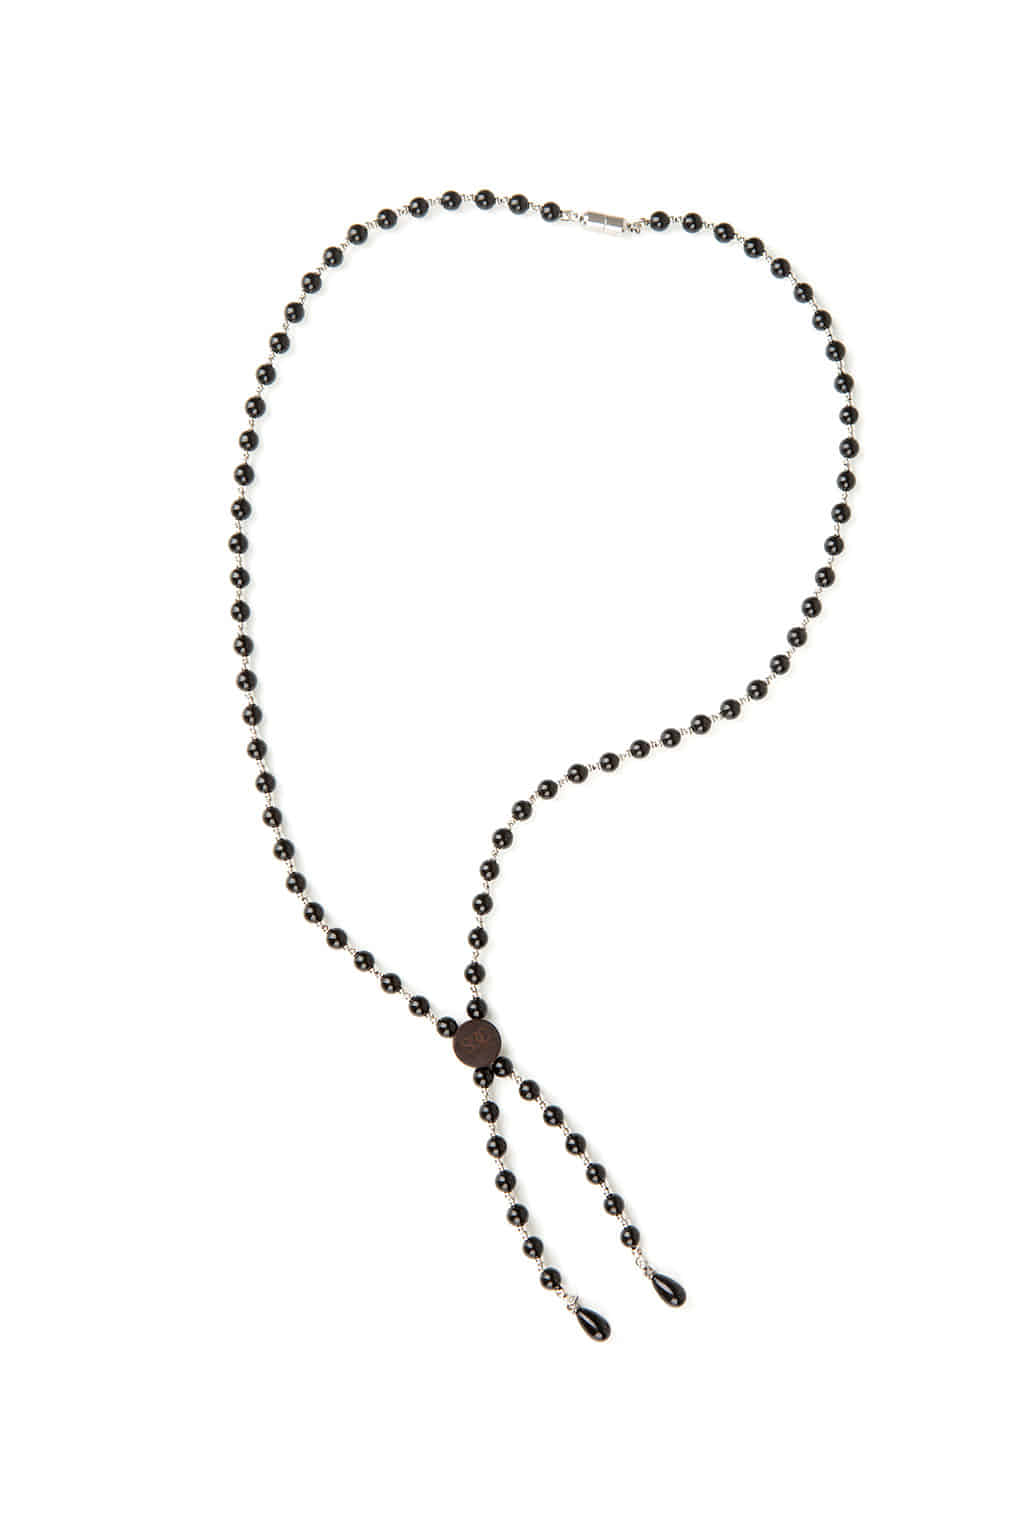 Y-drop necklace